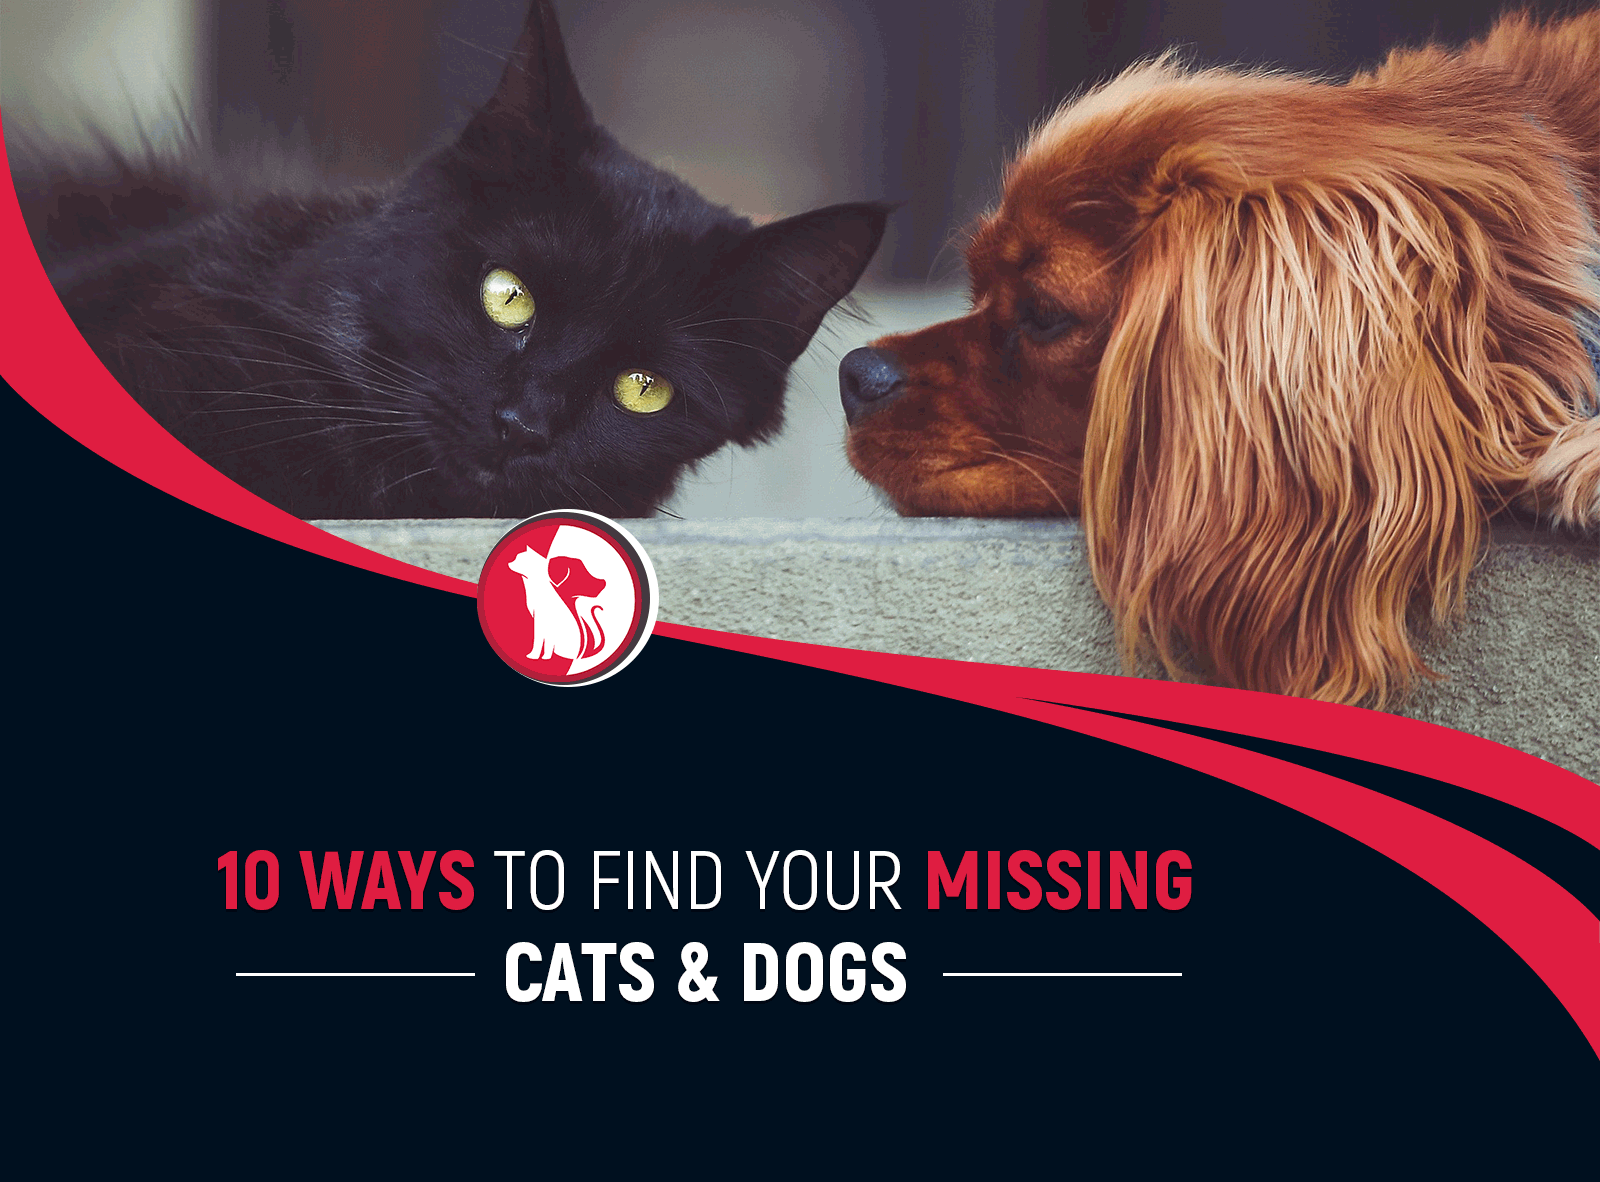 TOP 10 WAYS TO FIND YOUR MISSING CATS AND DOGS